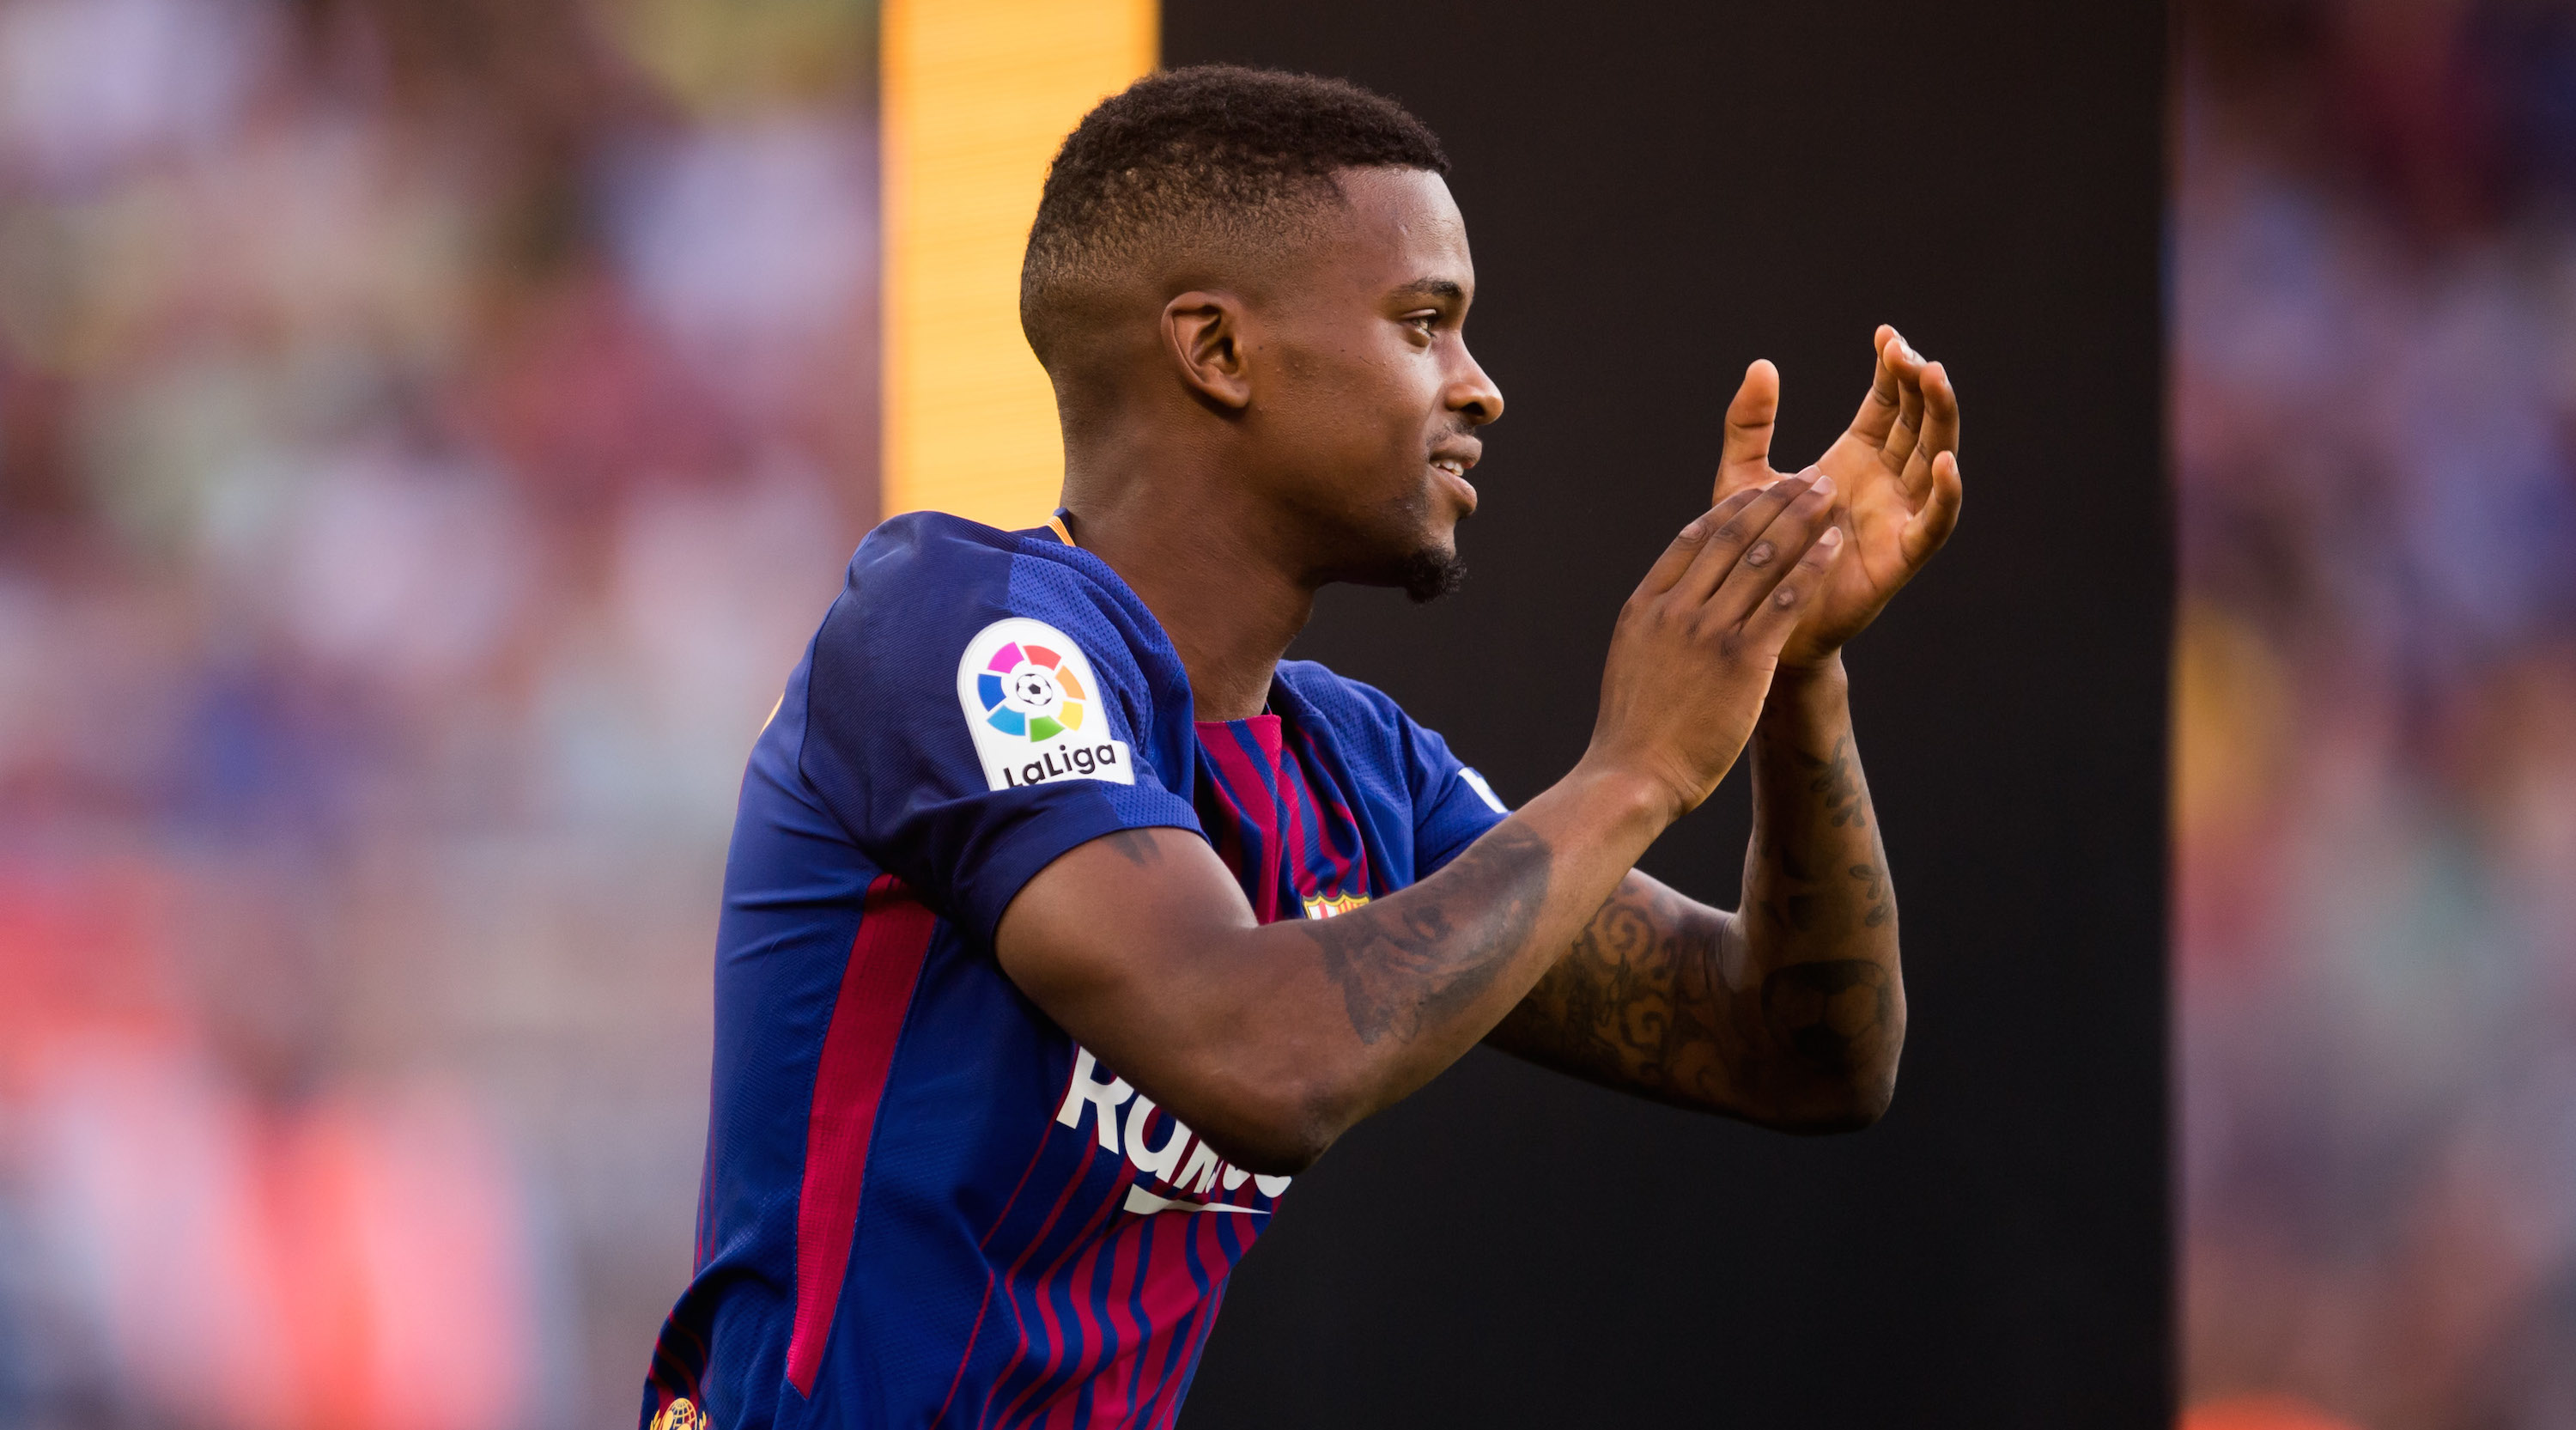 BARCELONA, SPAIN - AUGUST 07: Nelson Semedo of FC Barcelona enters the pitch ahead of the Joan Gamper Trophy match between FC Barcelona and Chapecoense at Camp Nou stadium on August 7, 2017 in Barcelona, Spain. (Photo by Alex Caparros/Getty Images)